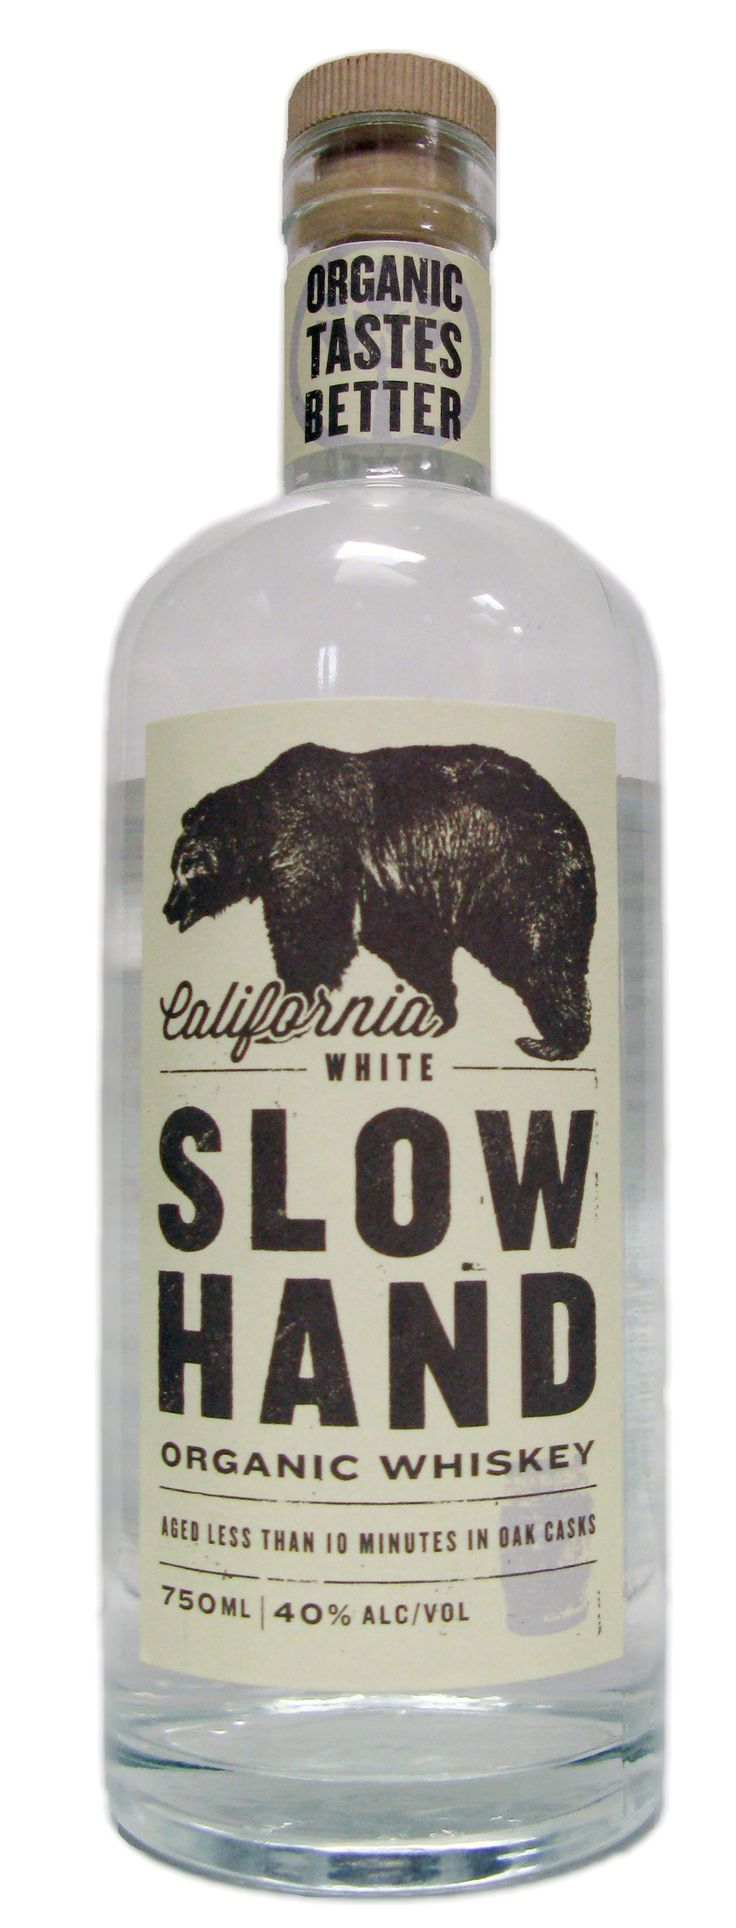 Slow Hand Organic Whiskey - GreenBar Collective serves up a new white spirit ready to drink now